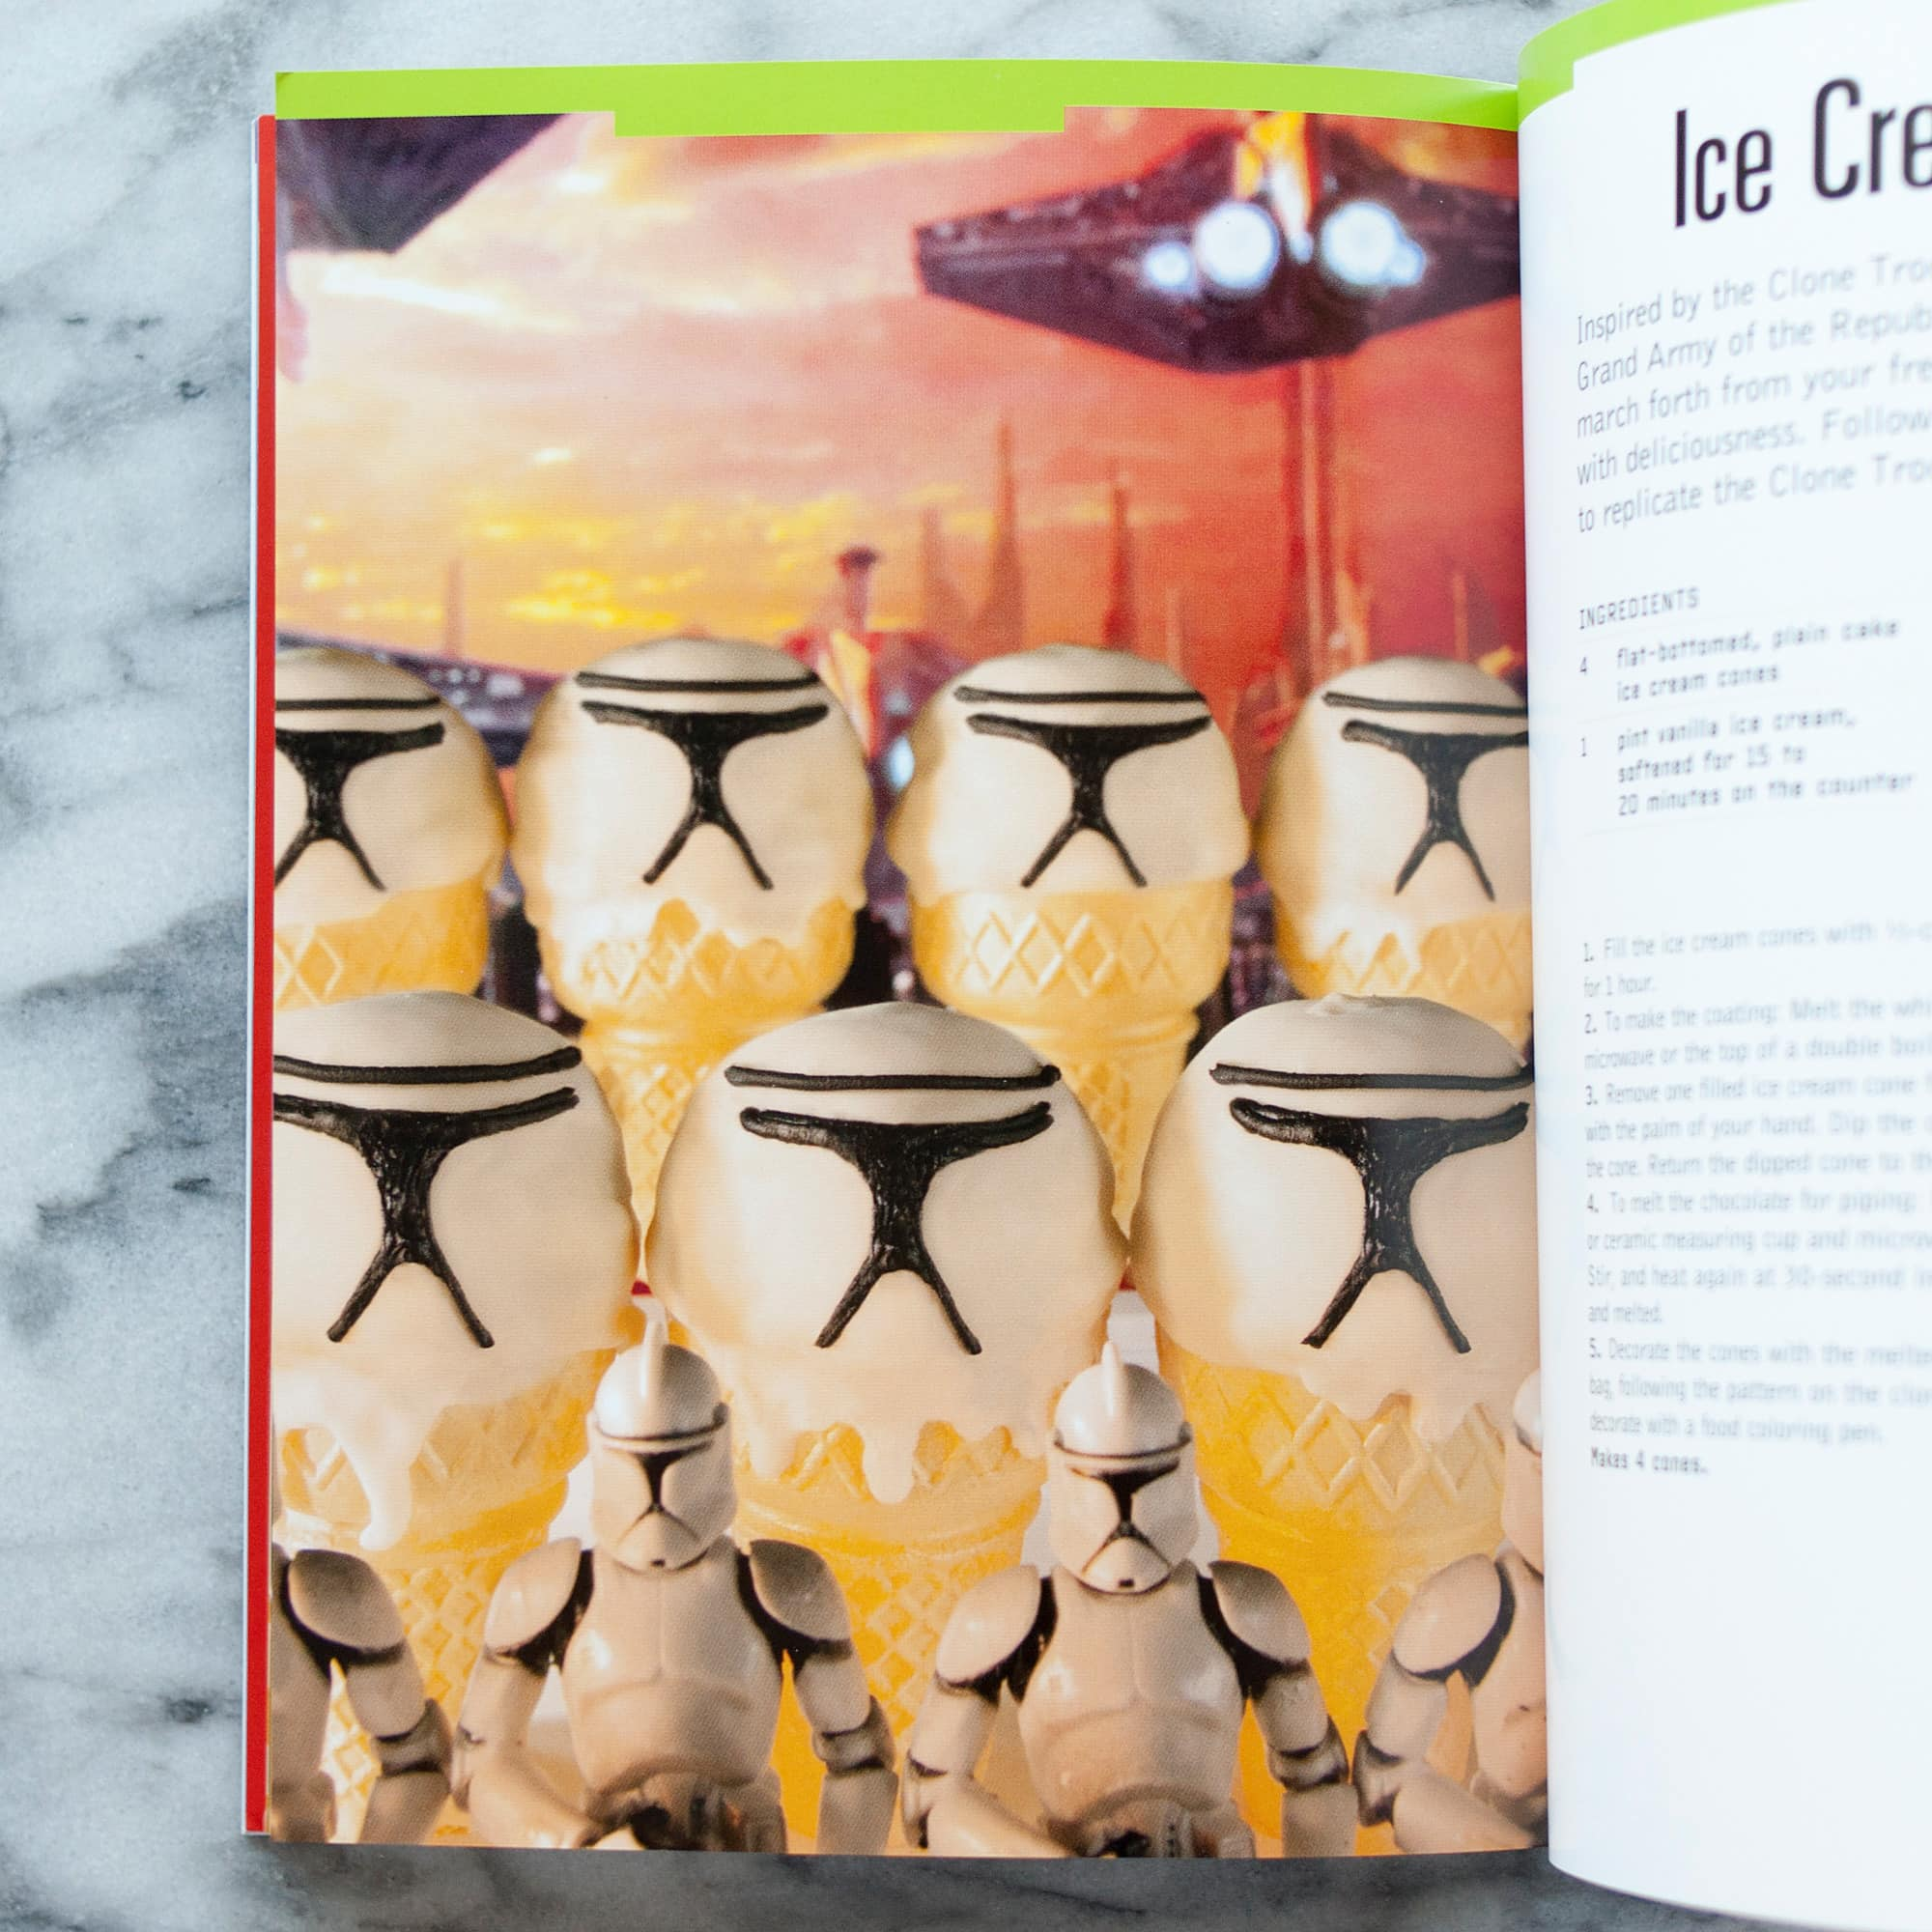 The Star Wars Cookbook: Ice Sabers by Lara Starr: gallery image 5